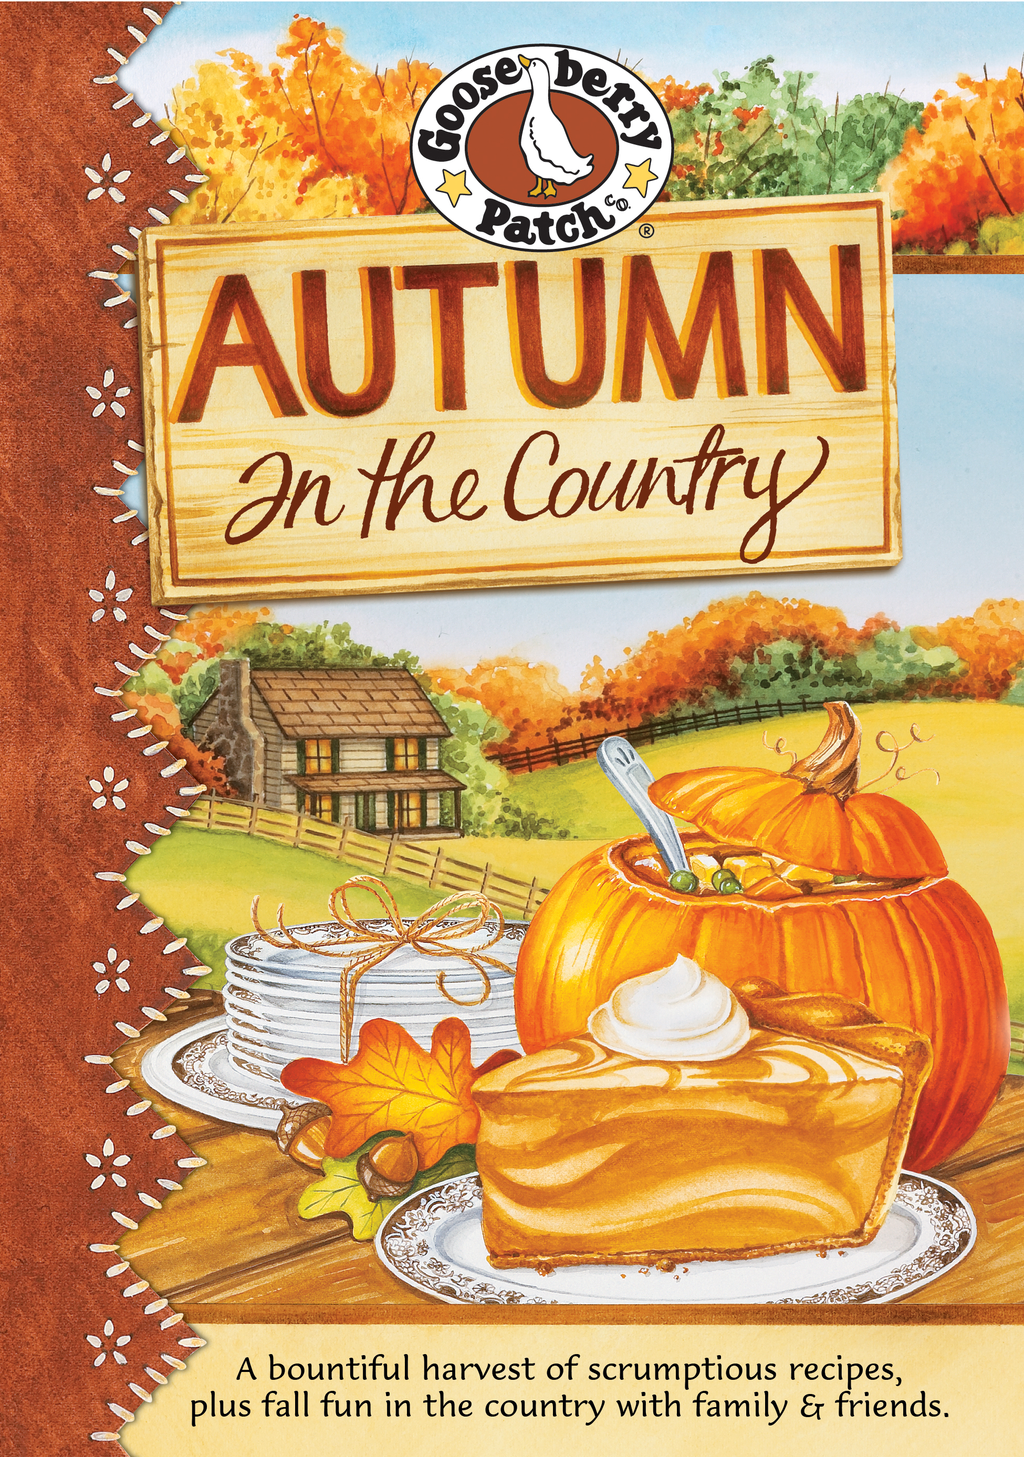 Autumn in the Country: A bountiful harvest of scrumptious recipes, plus fall fun in the country with family & friends.